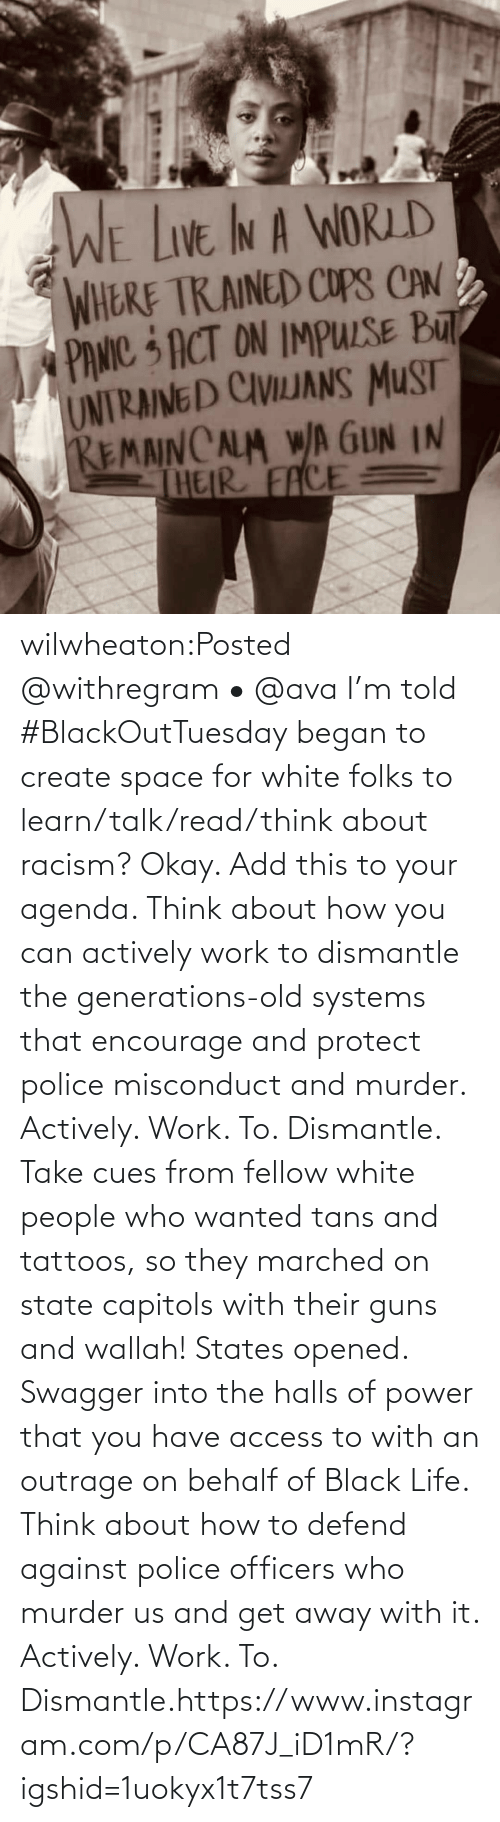 Into: wilwheaton:Posted @withregram • @ava I'm told #BlackOutTuesday began to create space for white folks to learn/talk/read/think about racism? Okay. Add this to your agenda. Think about how you can actively work to dismantle the generations-old systems that encourage and protect police misconduct and murder. Actively. Work. To. Dismantle. Take cues from fellow white people who wanted tans and tattoos, so they marched on state capitols with their guns and wallah! States opened. Swagger into the halls of power that you have access to with an outrage on behalf of Black Life. Think about how to defend against police officers who murder us and get away with it. Actively. Work. To. Dismantle.https://www.instagram.com/p/CA87J_iD1mR/?igshid=1uokyx1t7tss7